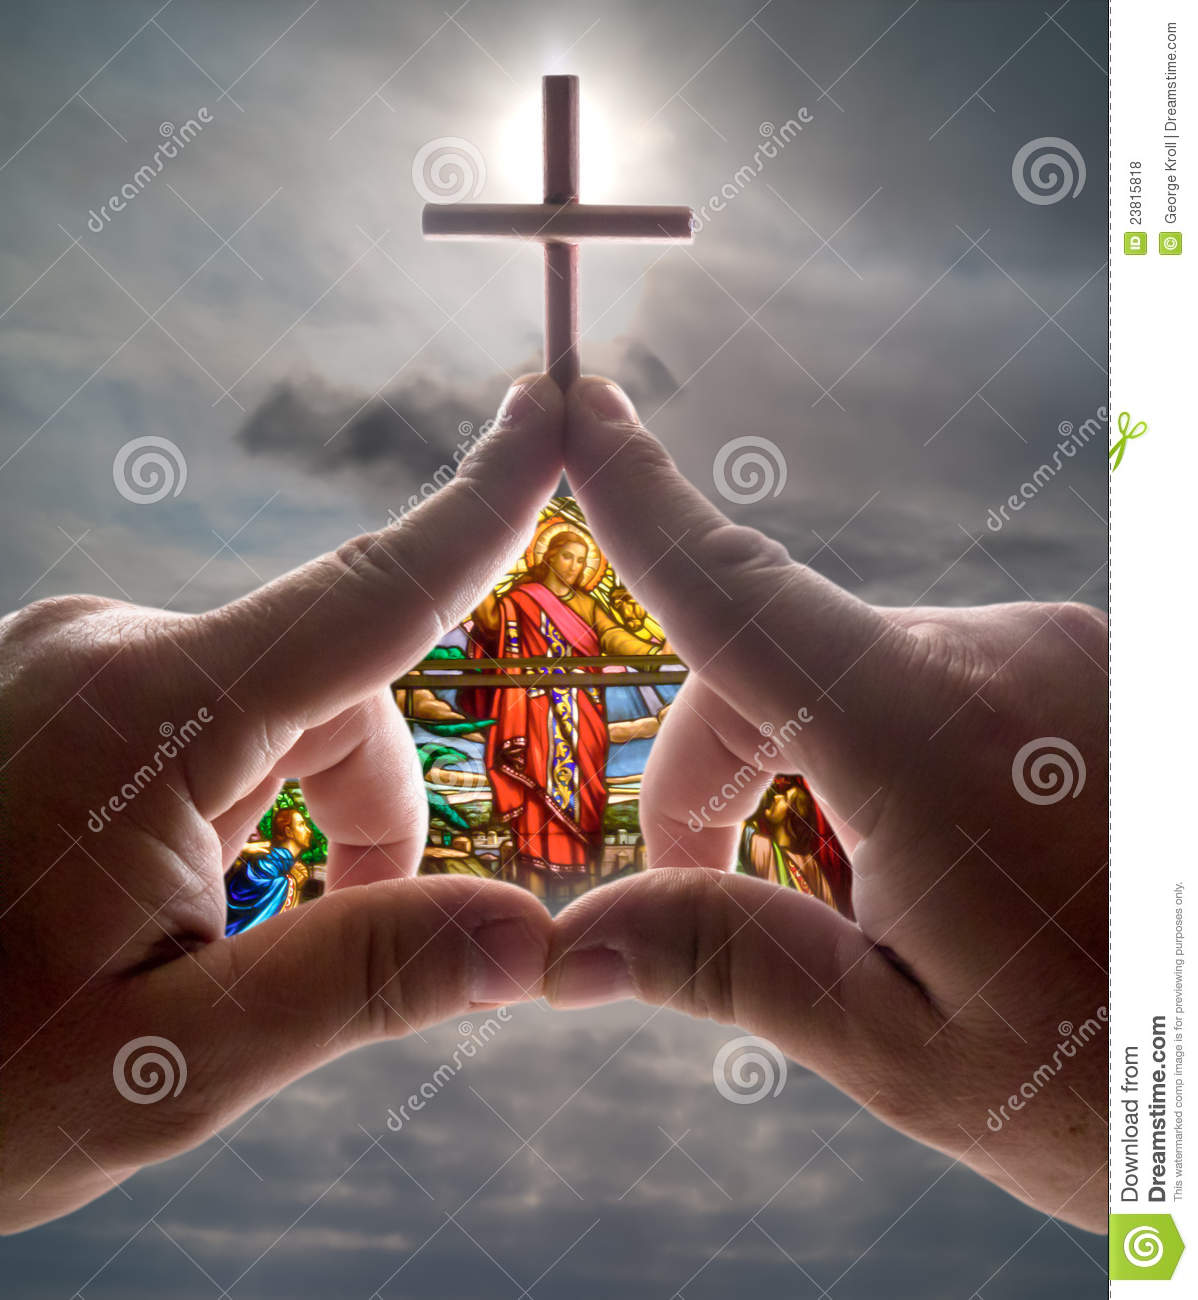 Hand church with cross stained glass against sky